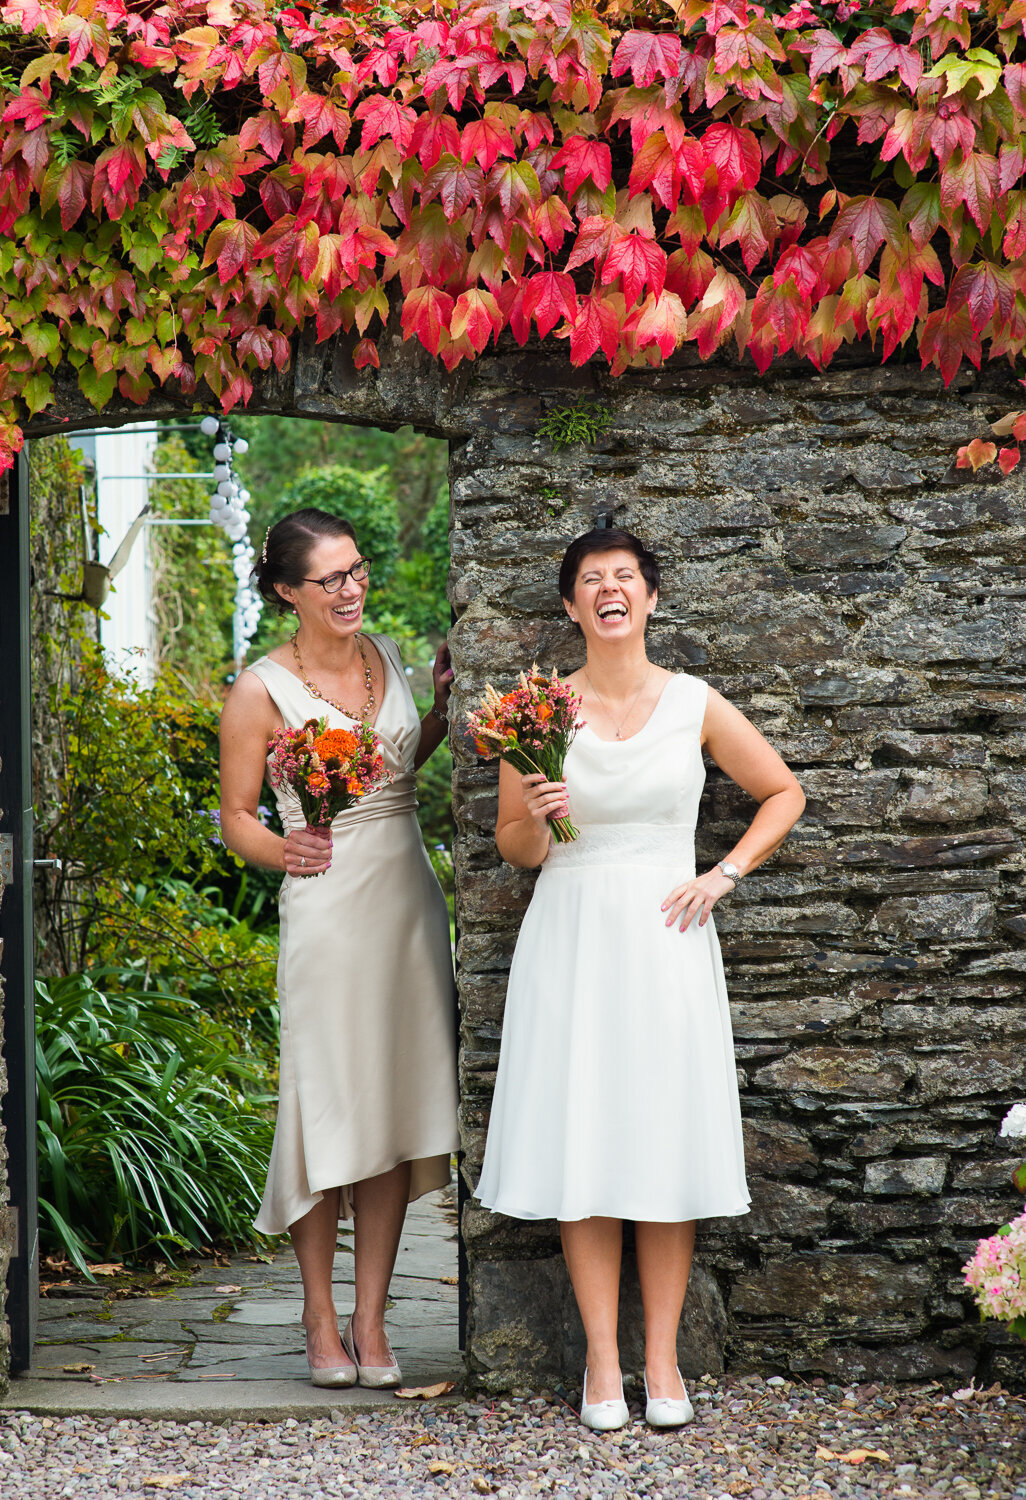 Gay brides holding orange flower bouquets, laughing underneath red and orange ivy leaf